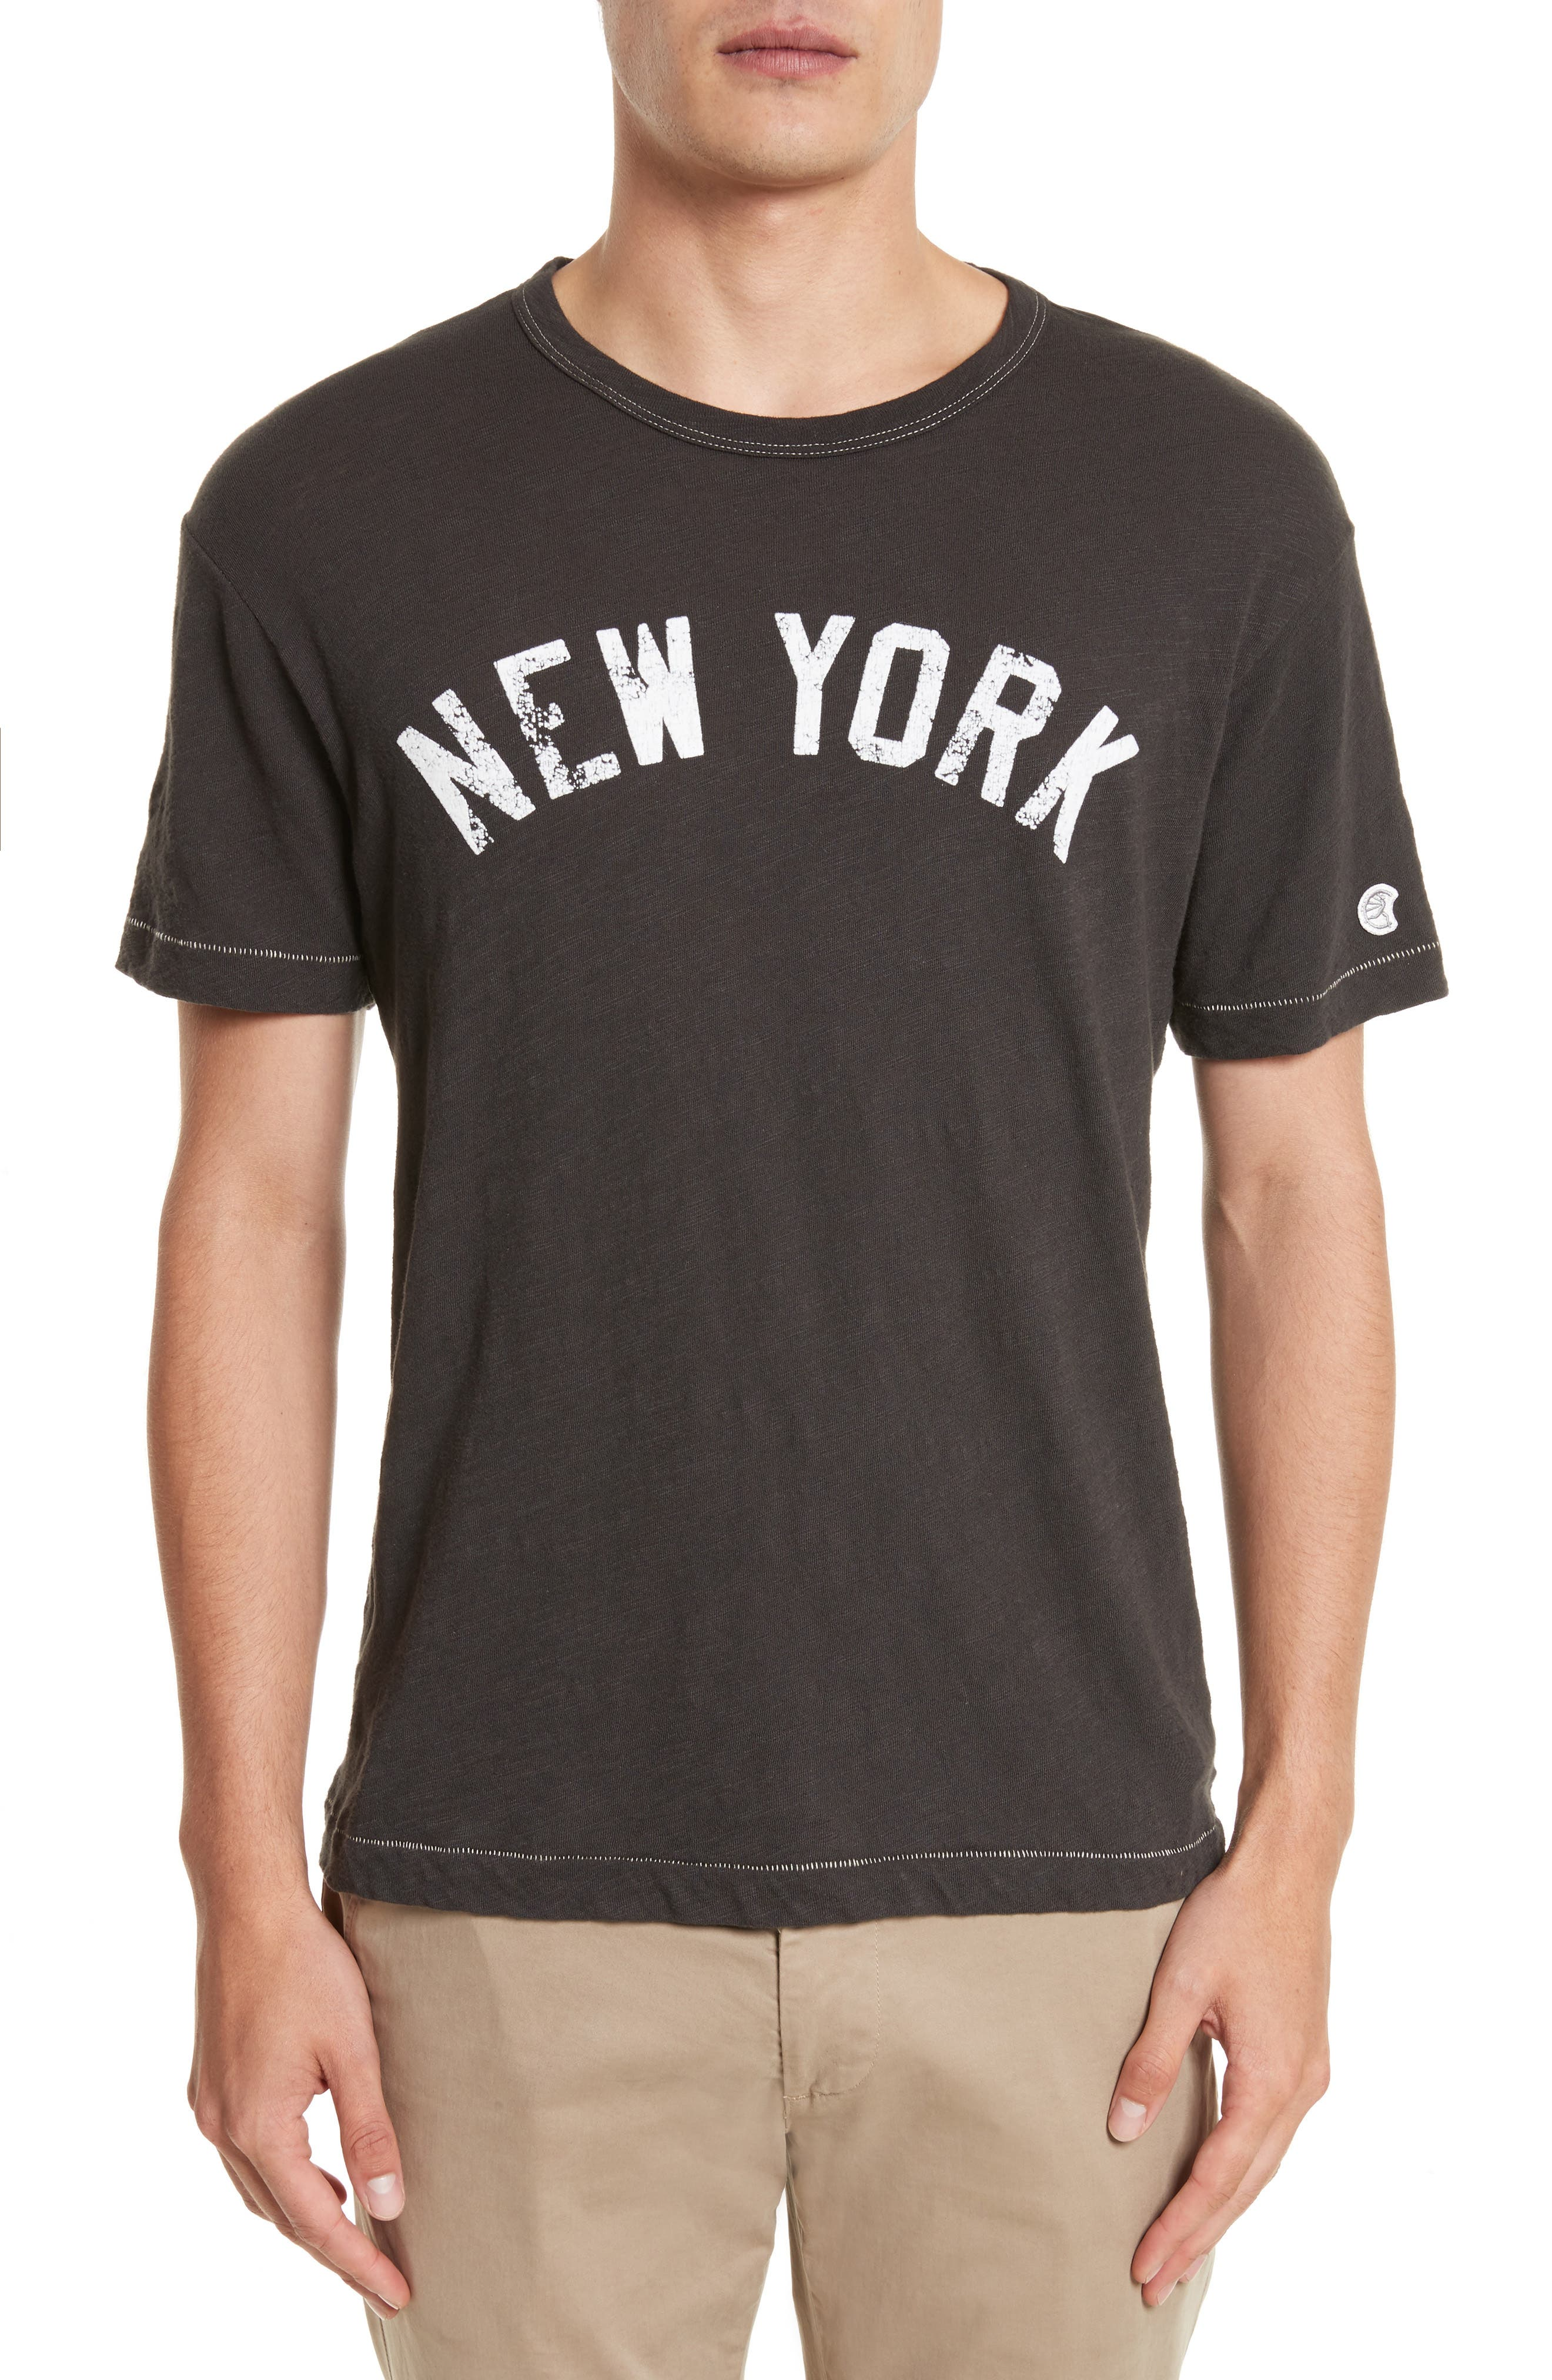 Alternate Image 1 Selected - Todd Snyder New York T-Shirt